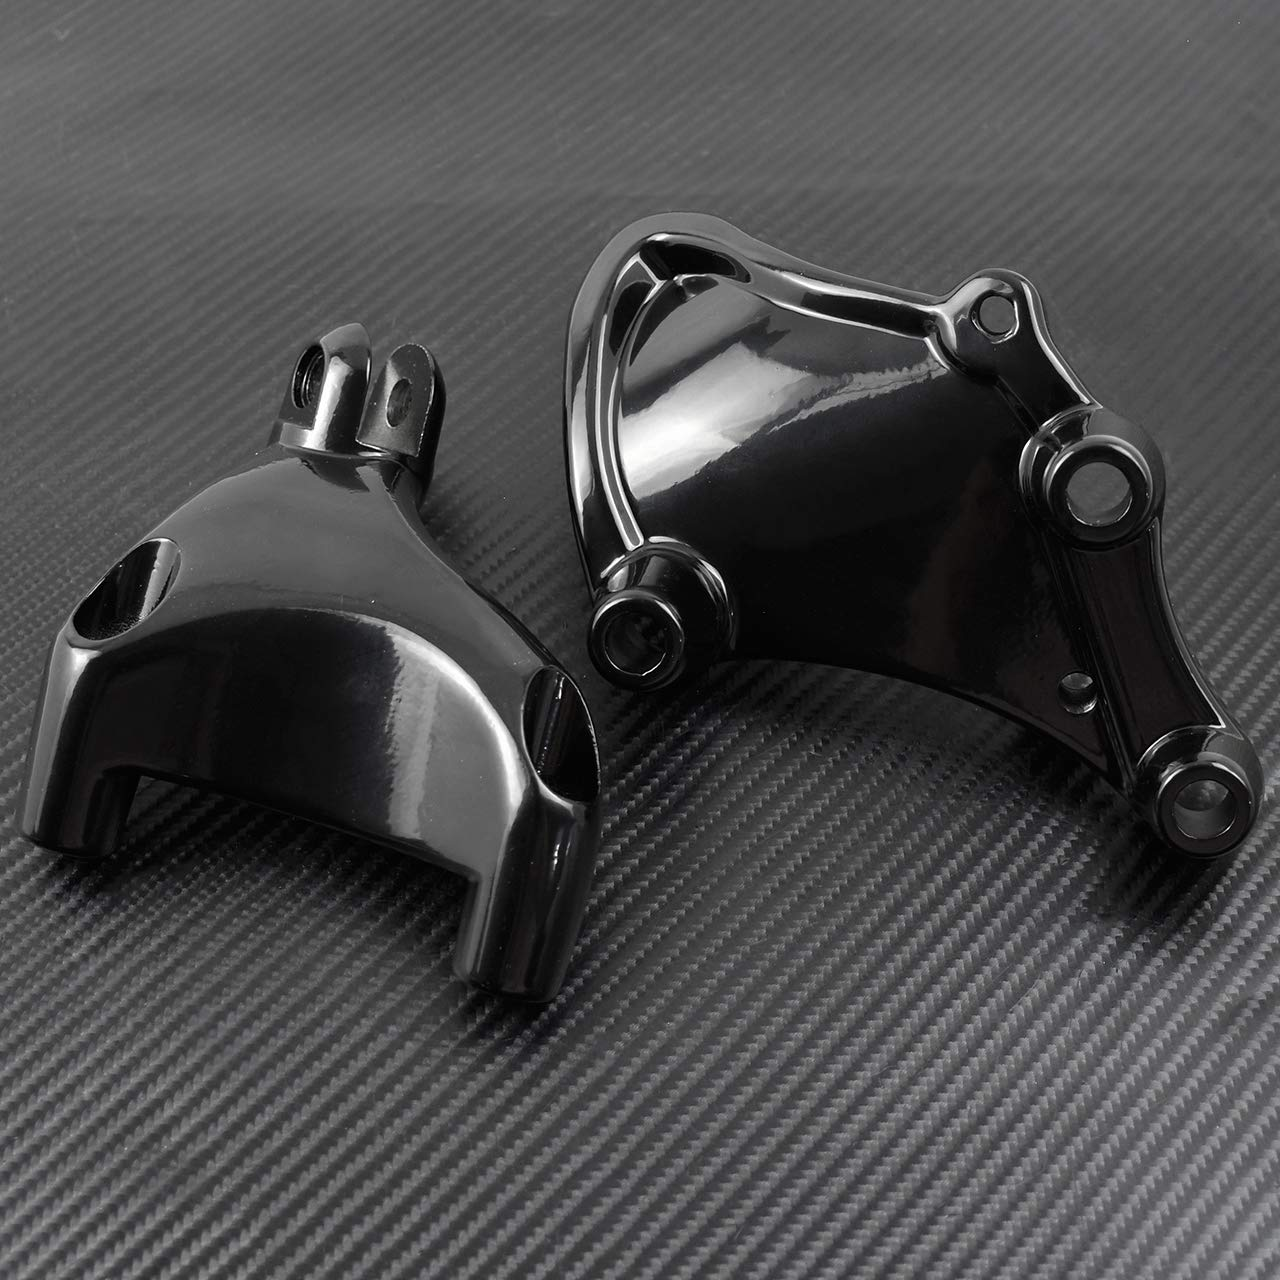 YHMTIVTU Motorcycle Foot Pegs Passenger Foot Rests for 2014-2019 Harley Sportster Iron XL 883 1200 48 72